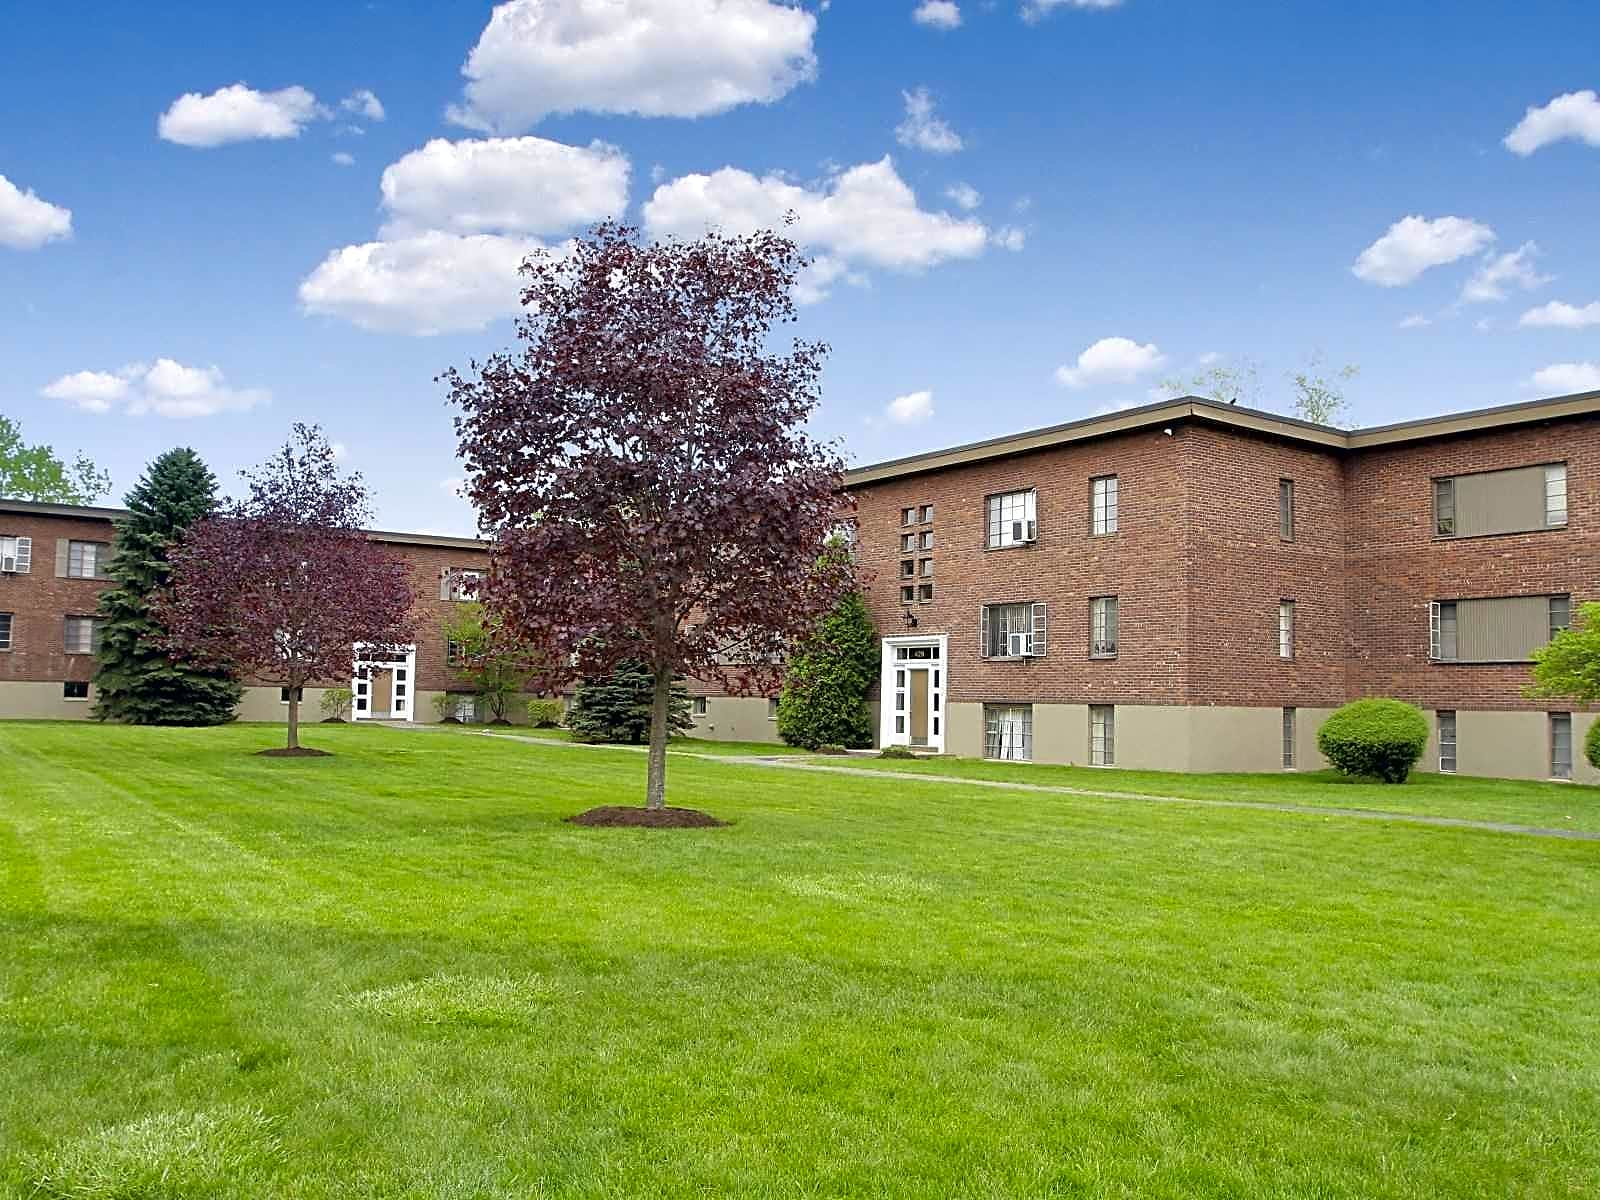 Apartments Near Siena Tivoli Park Apartments for Siena College Students in Loudonville, NY